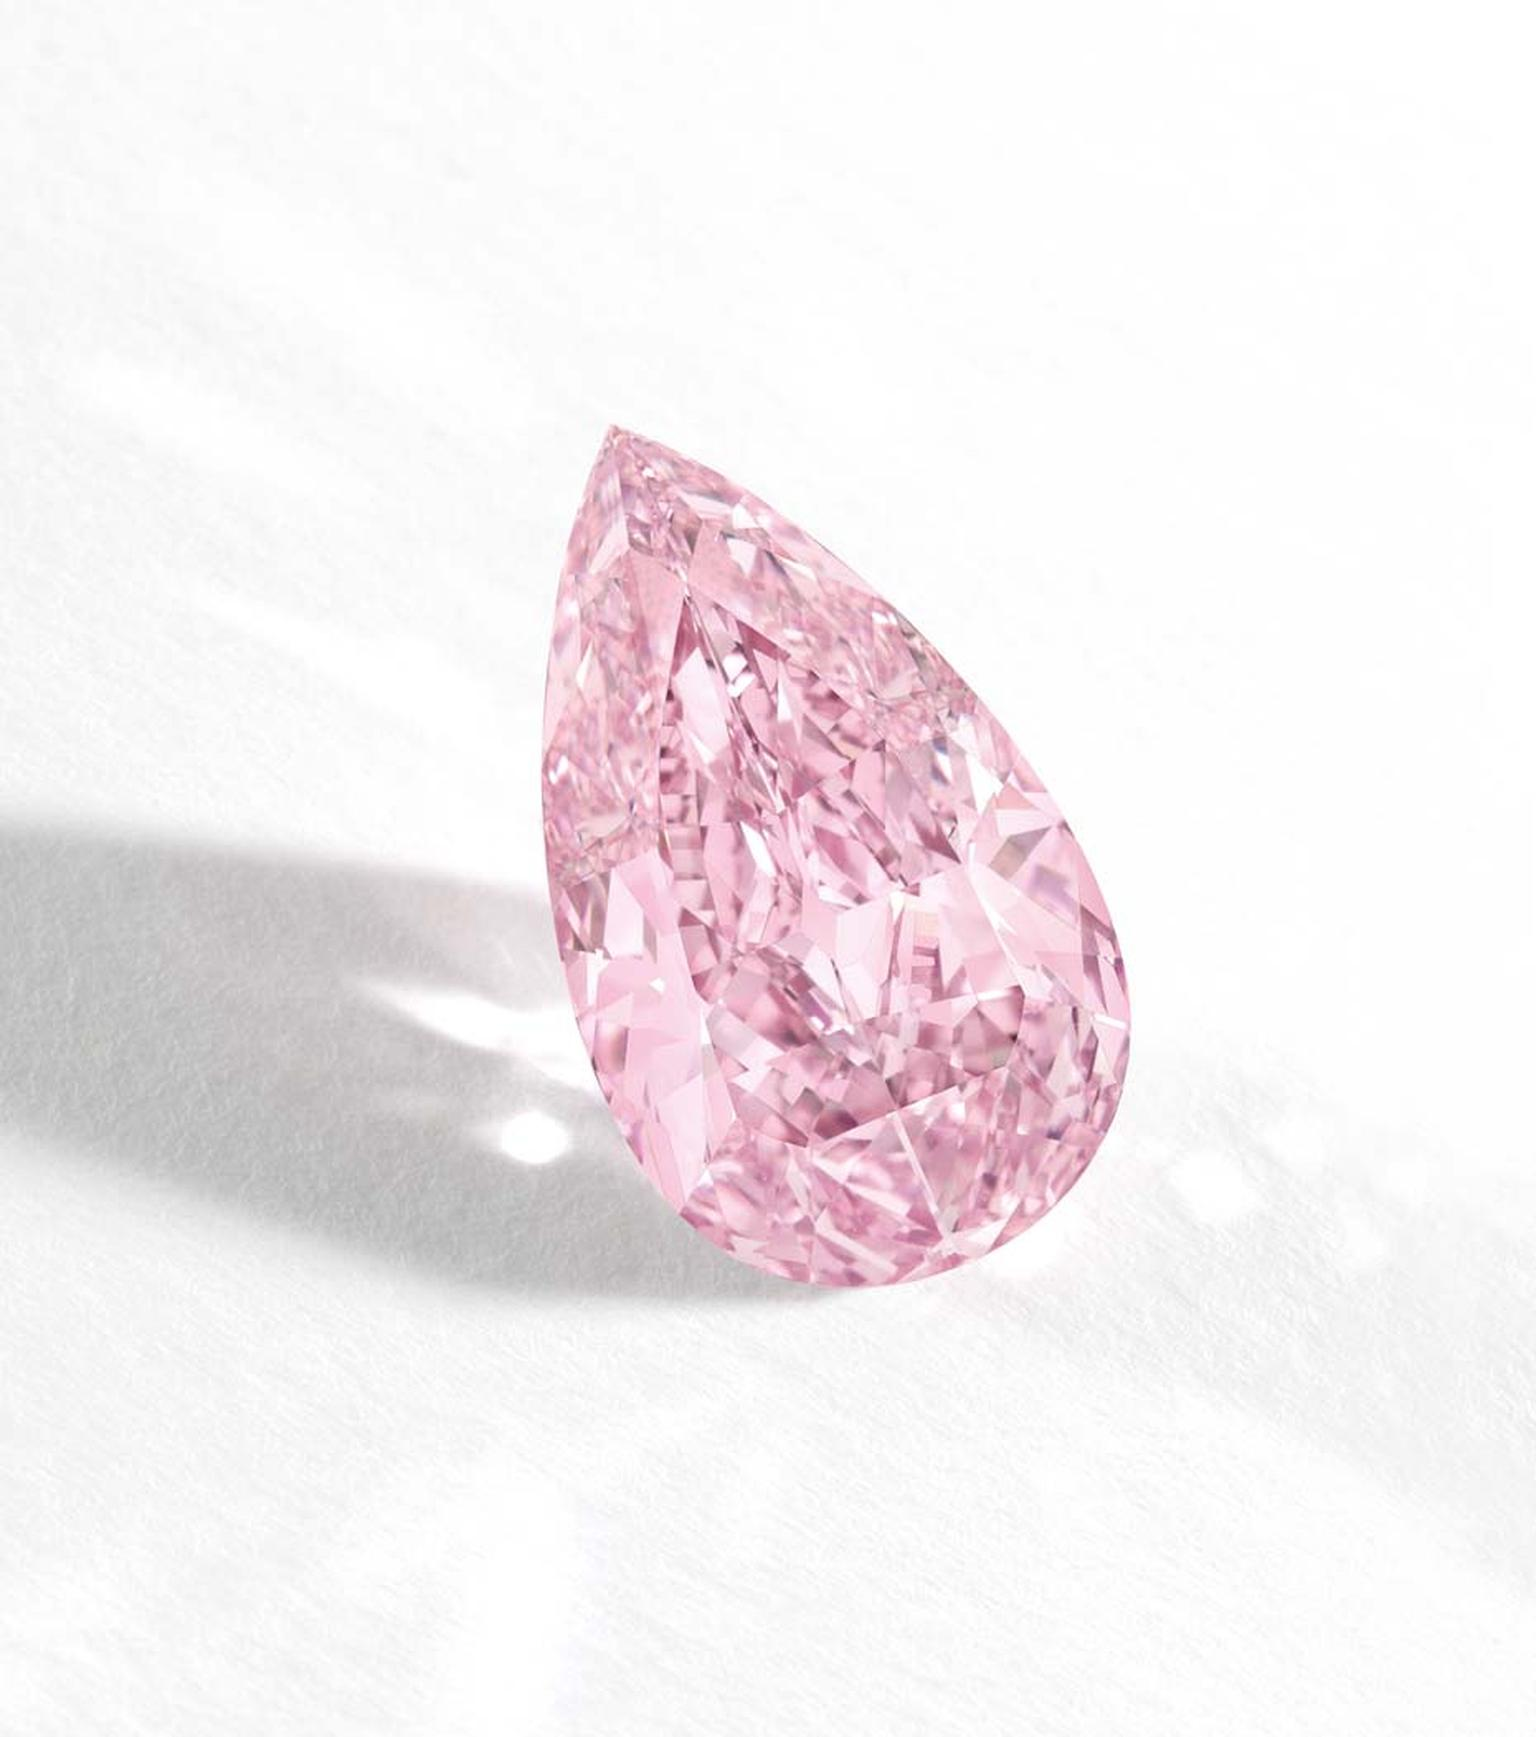 The highlight of Sotheby's Hong Kong Magnificent Jewels and Jadeite Autumn Sale on 7 October 2014 is an Internally Flawless (IF) Fancy Vivid Purple-Pink Diamond, weighing in at 8.41 carats.